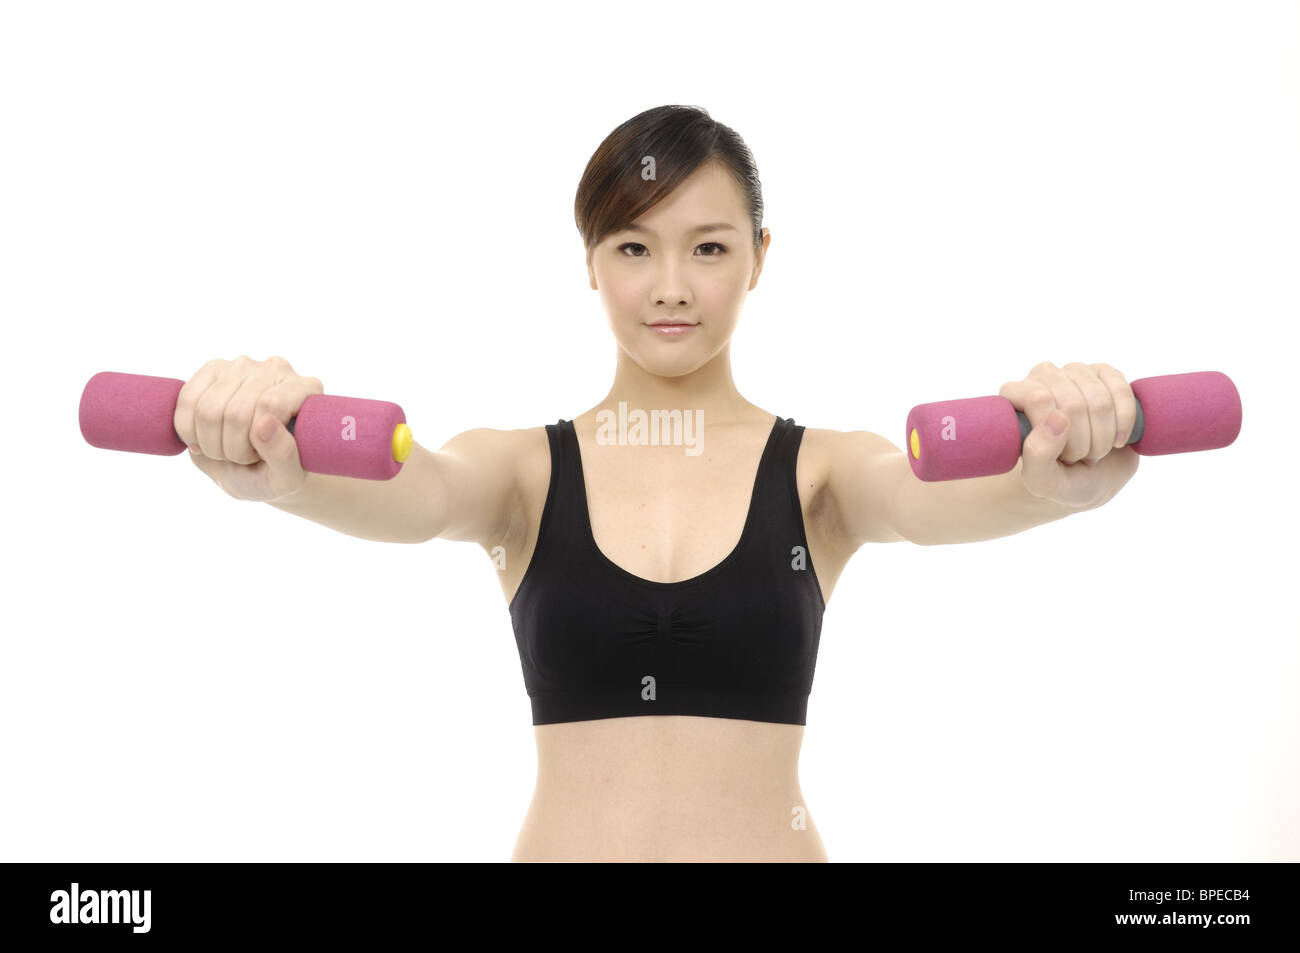 Woman lifting dumbbell indoors , smiling, portrait - Stock Image